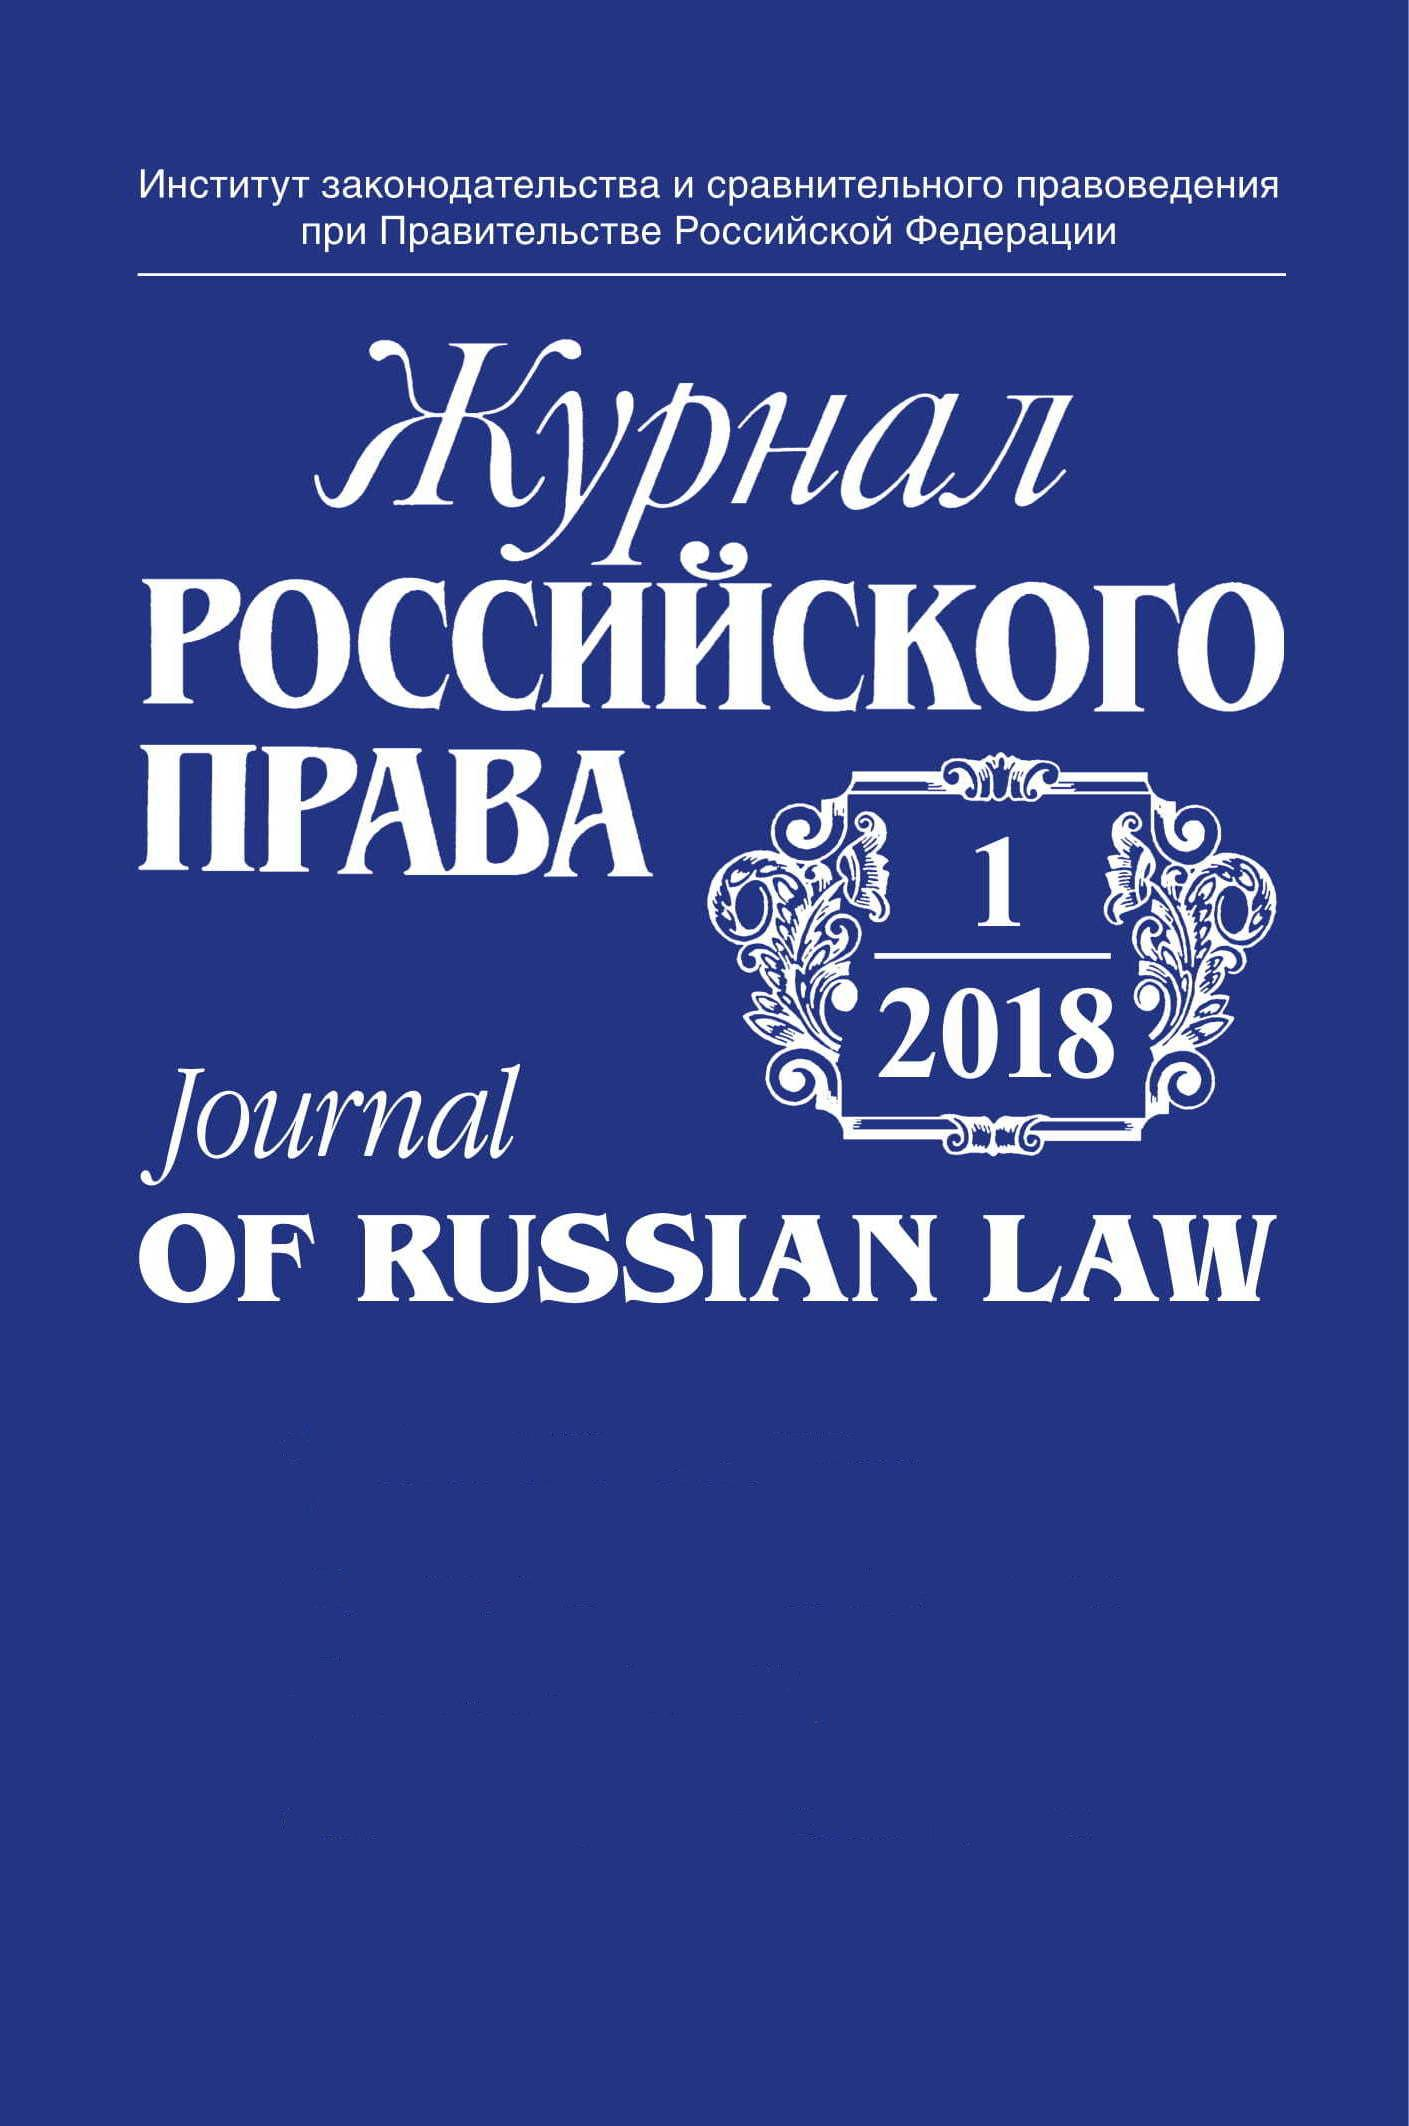 On the Russian Legal Mentality in the Light of the Socionatural History and the Communicative Concept of Law